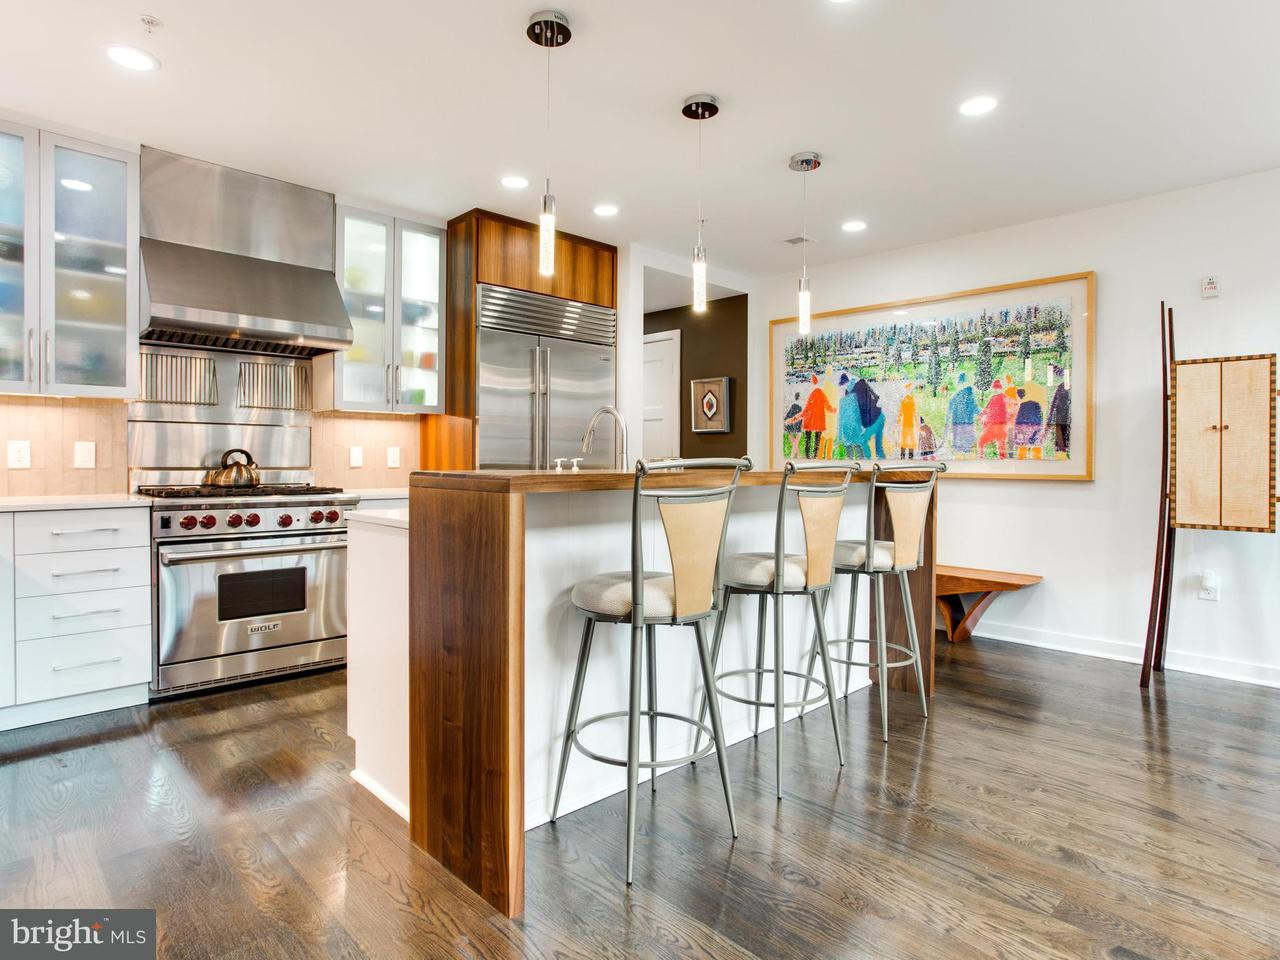 Additional photo for property listing at 1610 N QUEEN ST #247 1610 N QUEEN ST #247 Arlington, Virginia 22209 Vereinigte Staaten